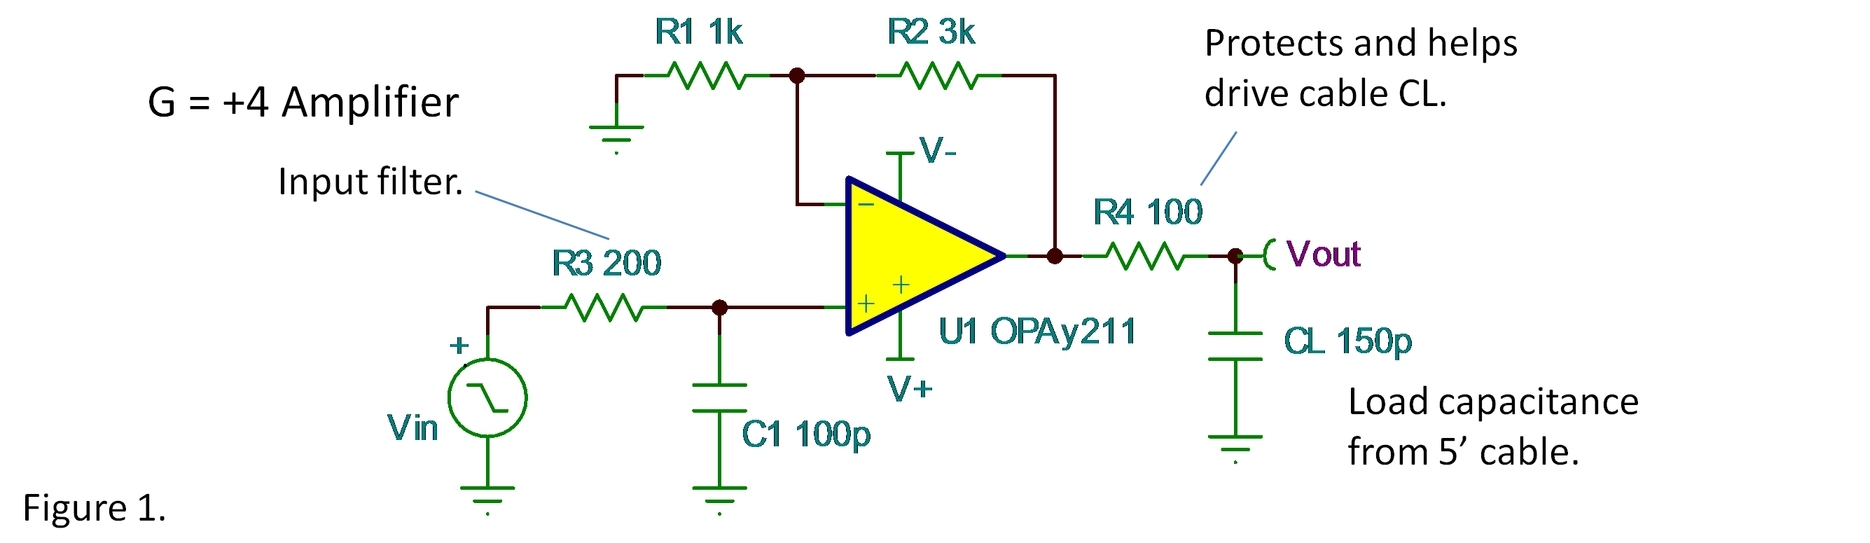 SPICEing Op Amp Stability - The Signal - Archives - TI E2E